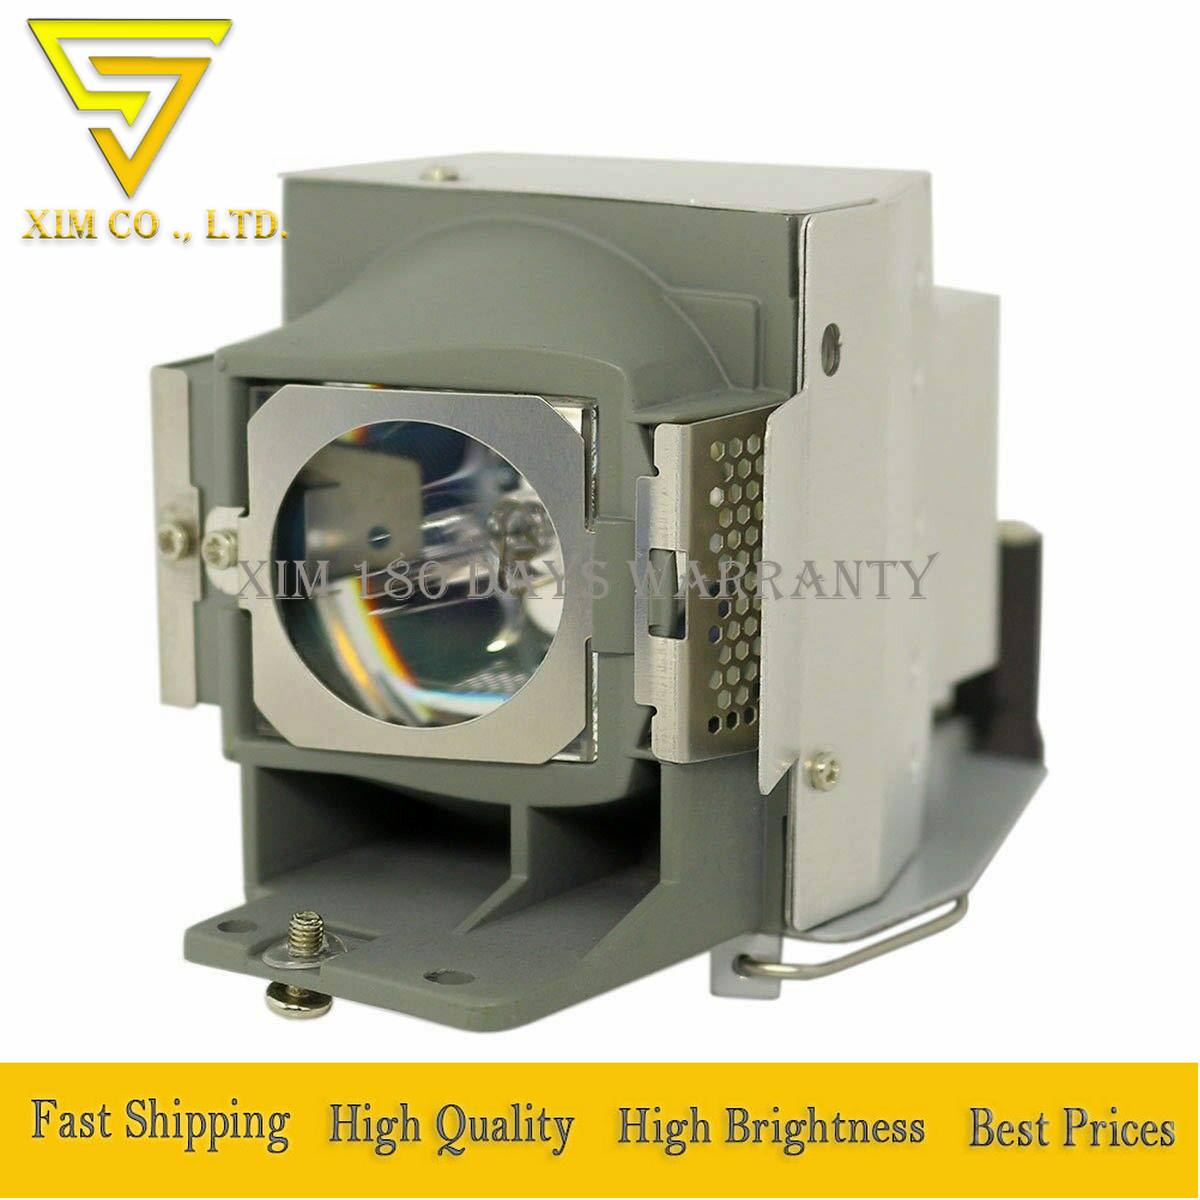 high quality RLC-071 Replacement Lamp with Housing for VIEWSONIC PJD6253 PJD6383 PJD6383s PJD6553w PJD6683w PJD6683ws Projectors